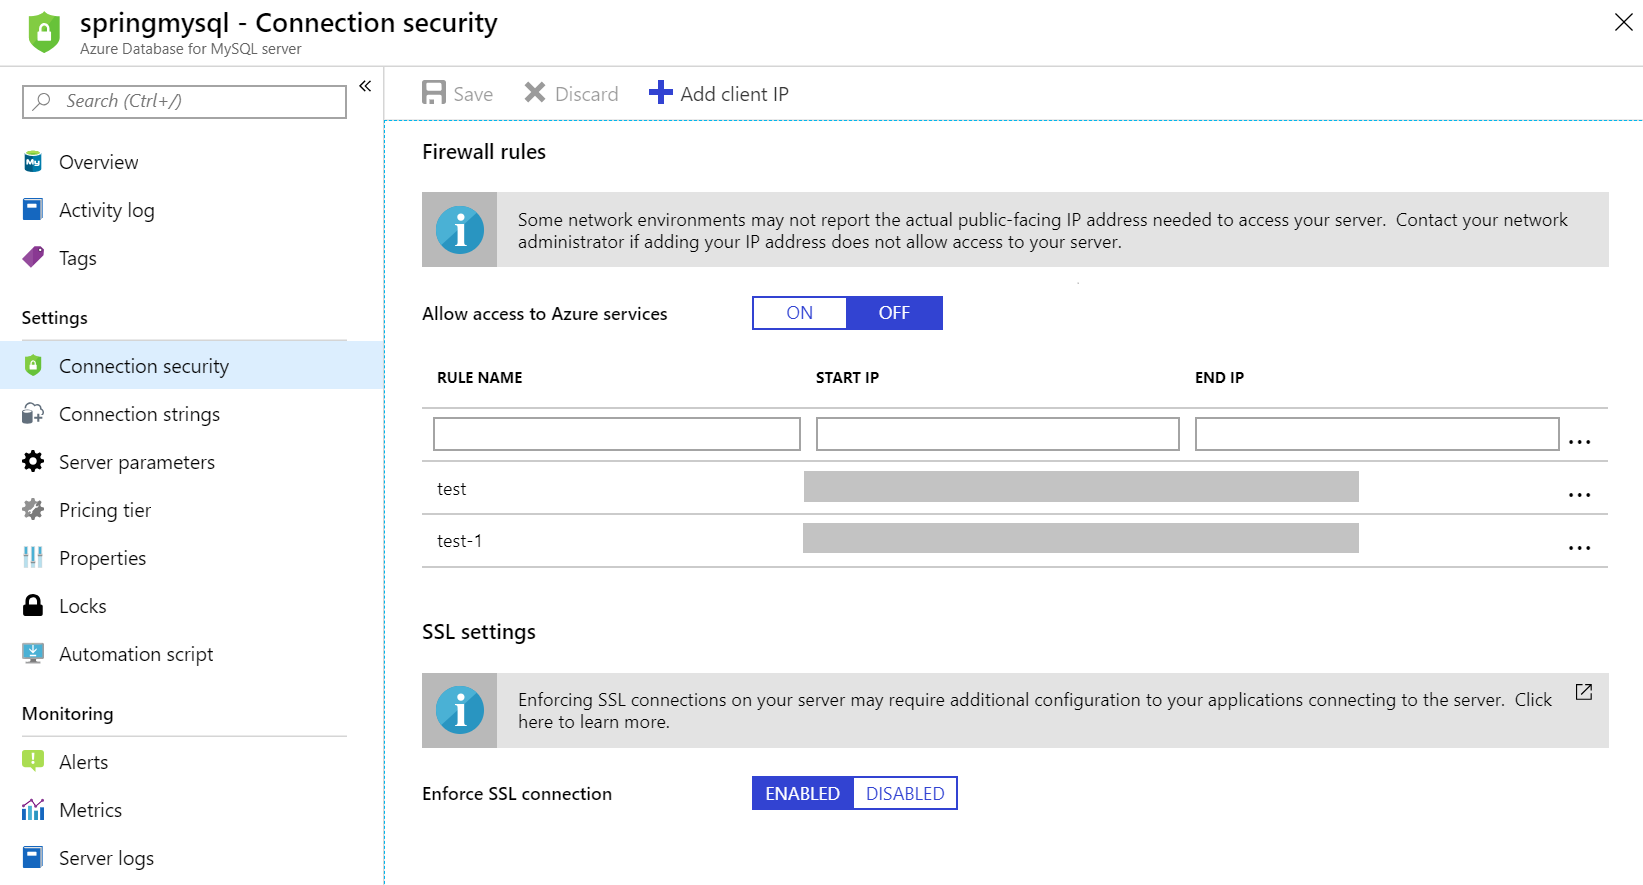 How to use Spring Data JPA with Azure Database for MySQL